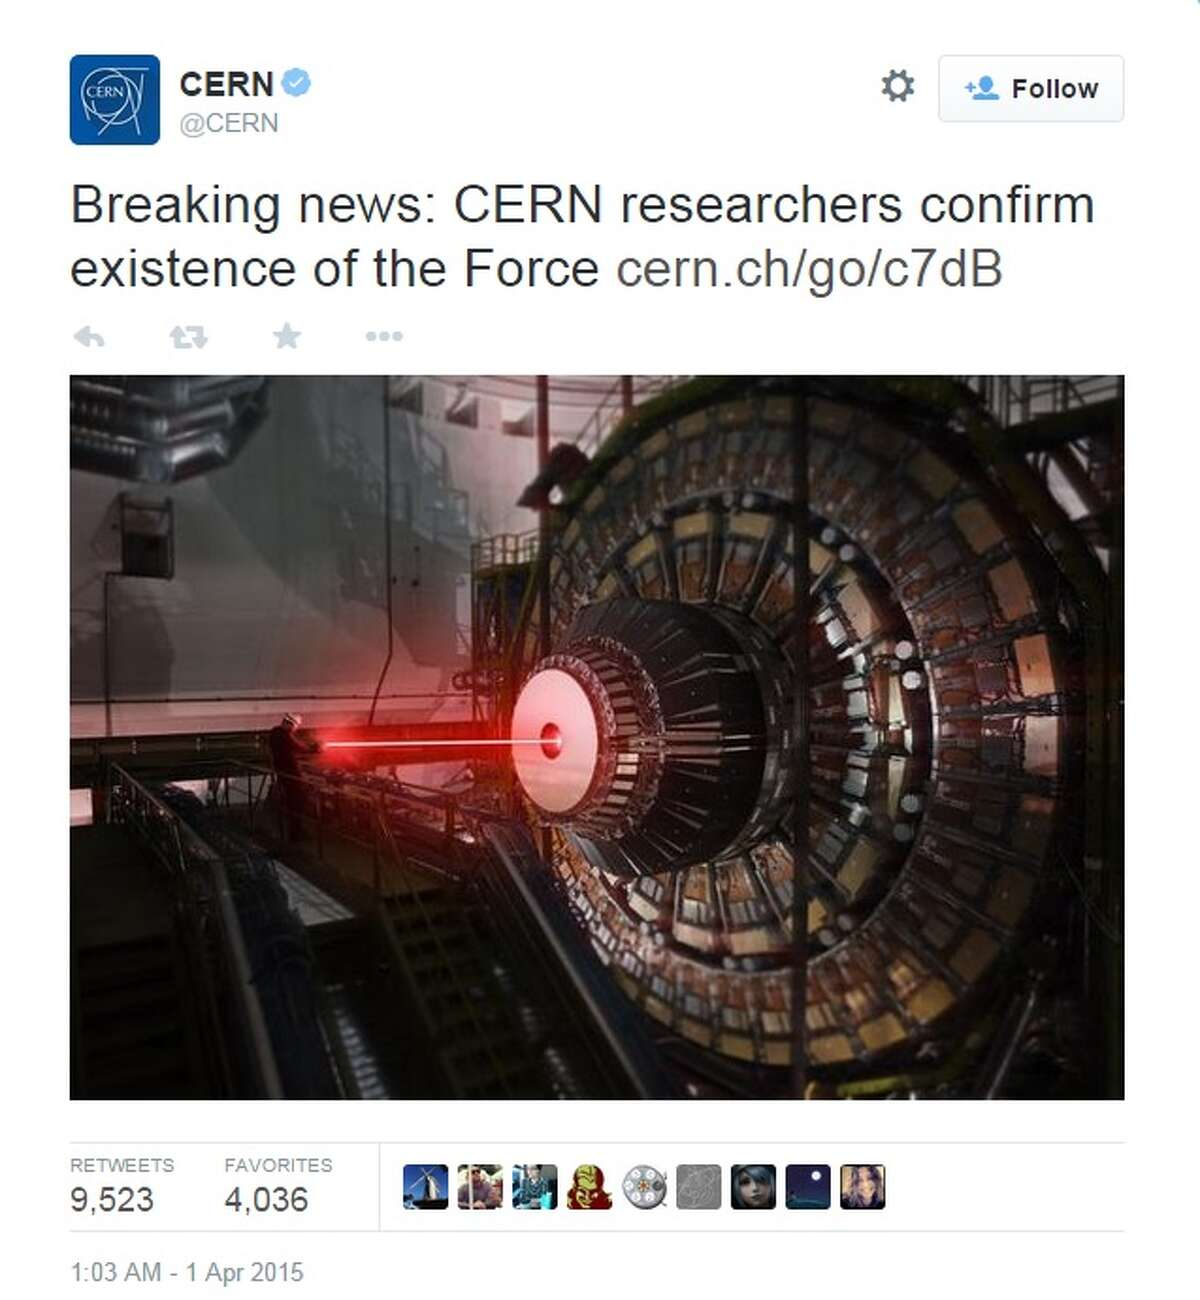 CERN, the European Research for Nuclear Research, tweeted that it discovered